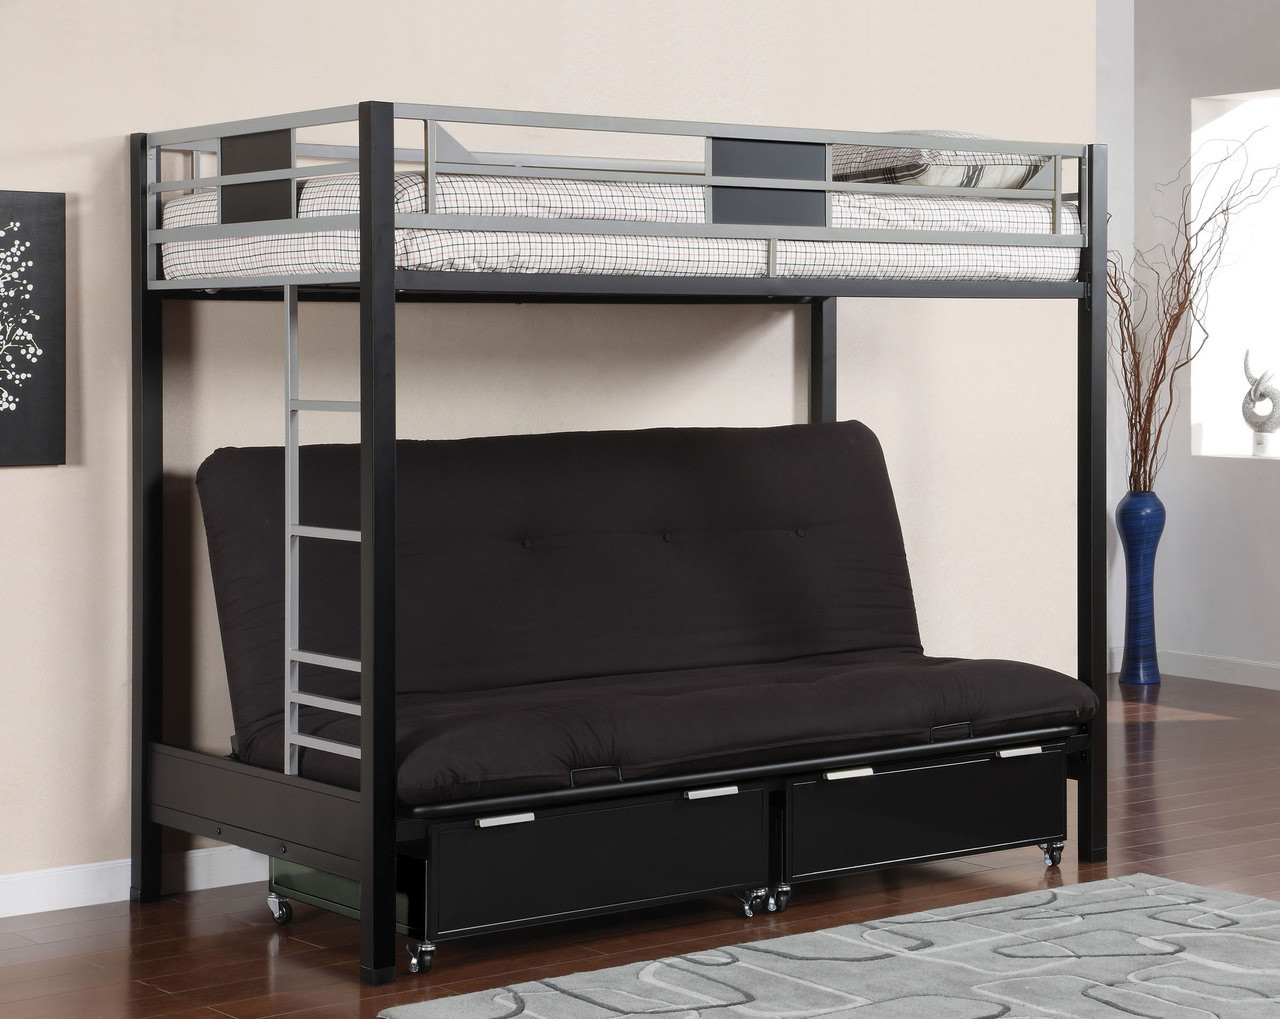 Silver black metal twin futon bunk bed youth furniture Black bunk beds